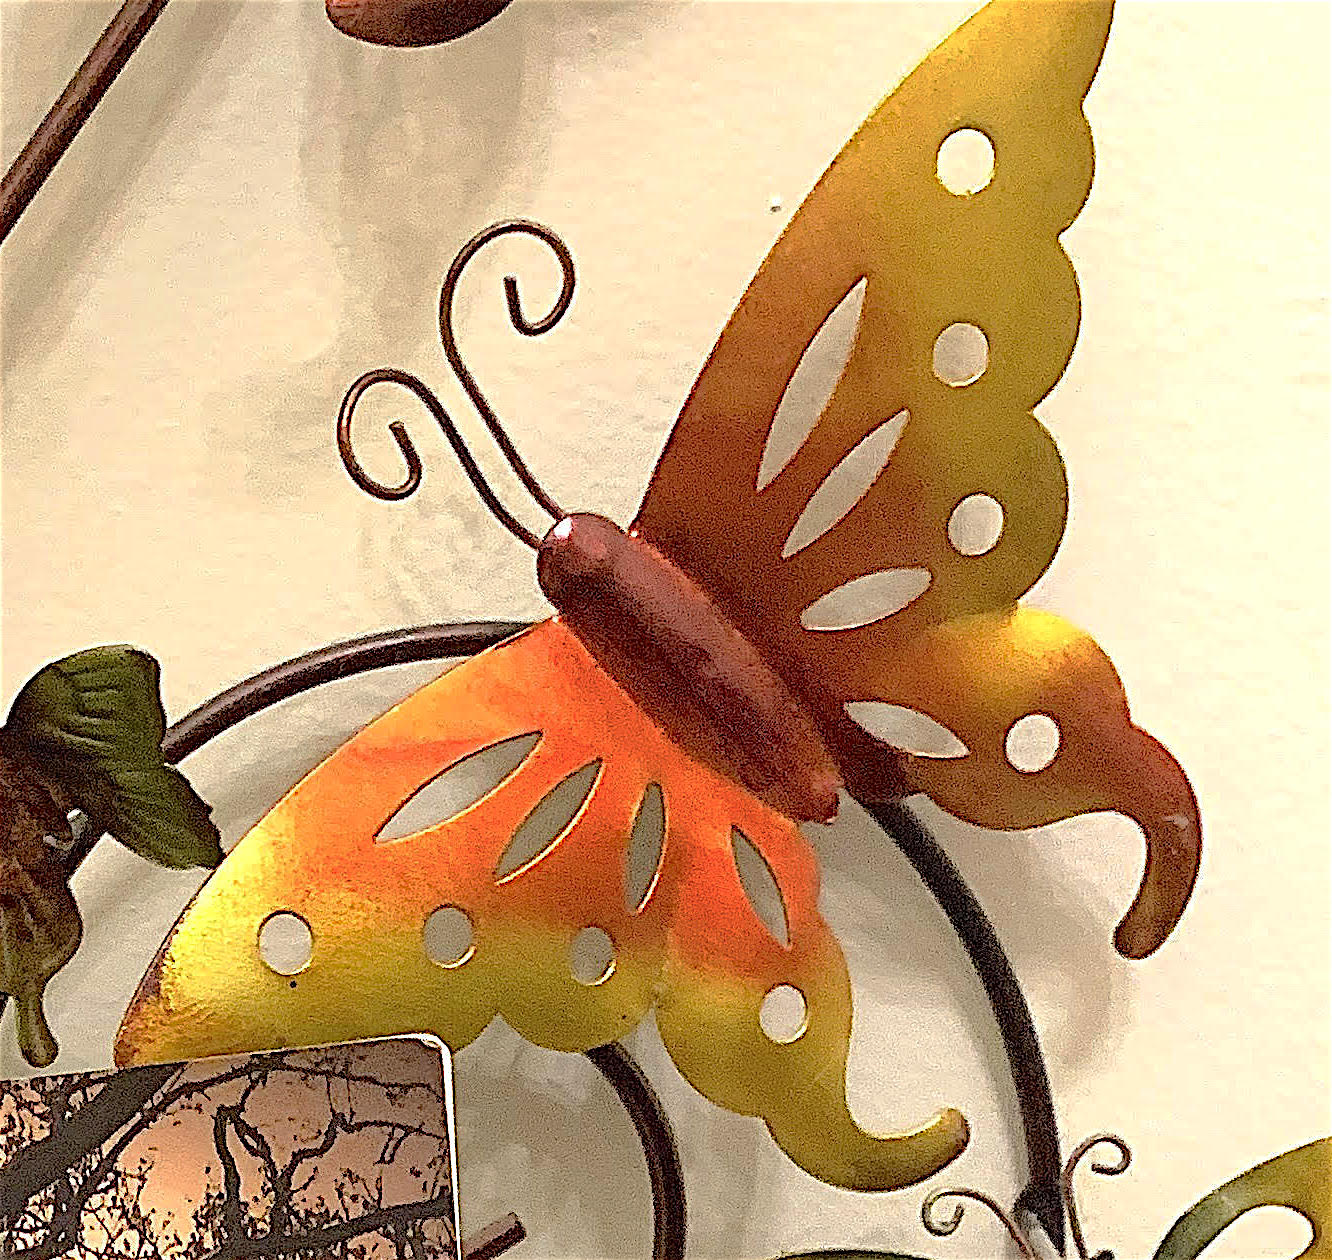 Close-up of one of the metal butterflies.  Its wings are painted bright red-orange at the center and gold on the edges.